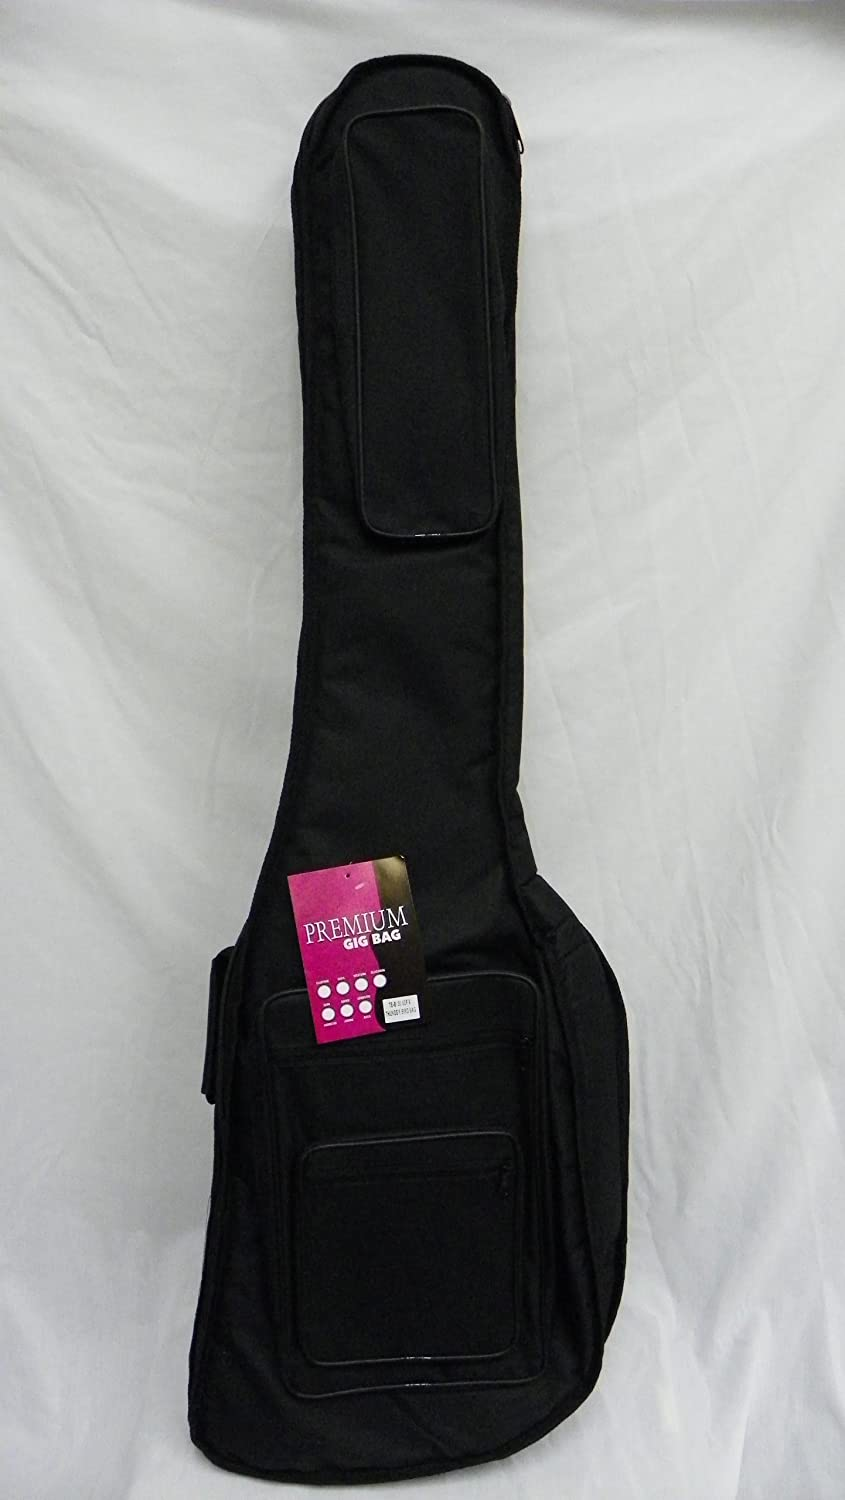 Extra Thick Thunderbird Bass Guitar Gig Bag /soft case India